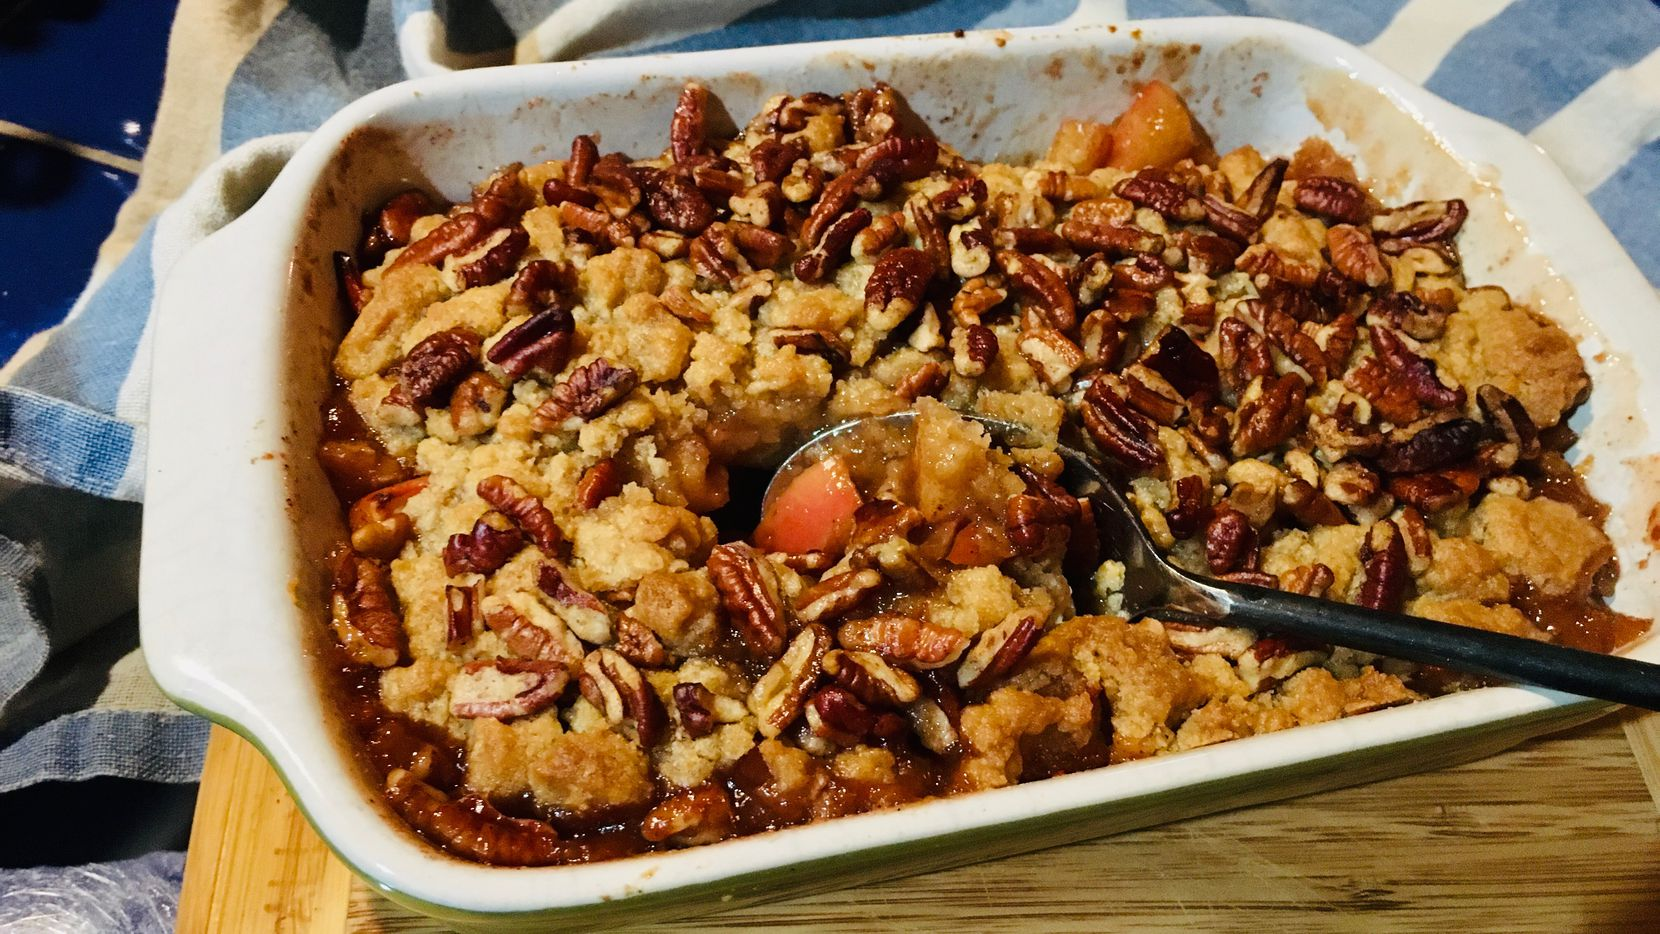 June Naylor's Apple Crisp